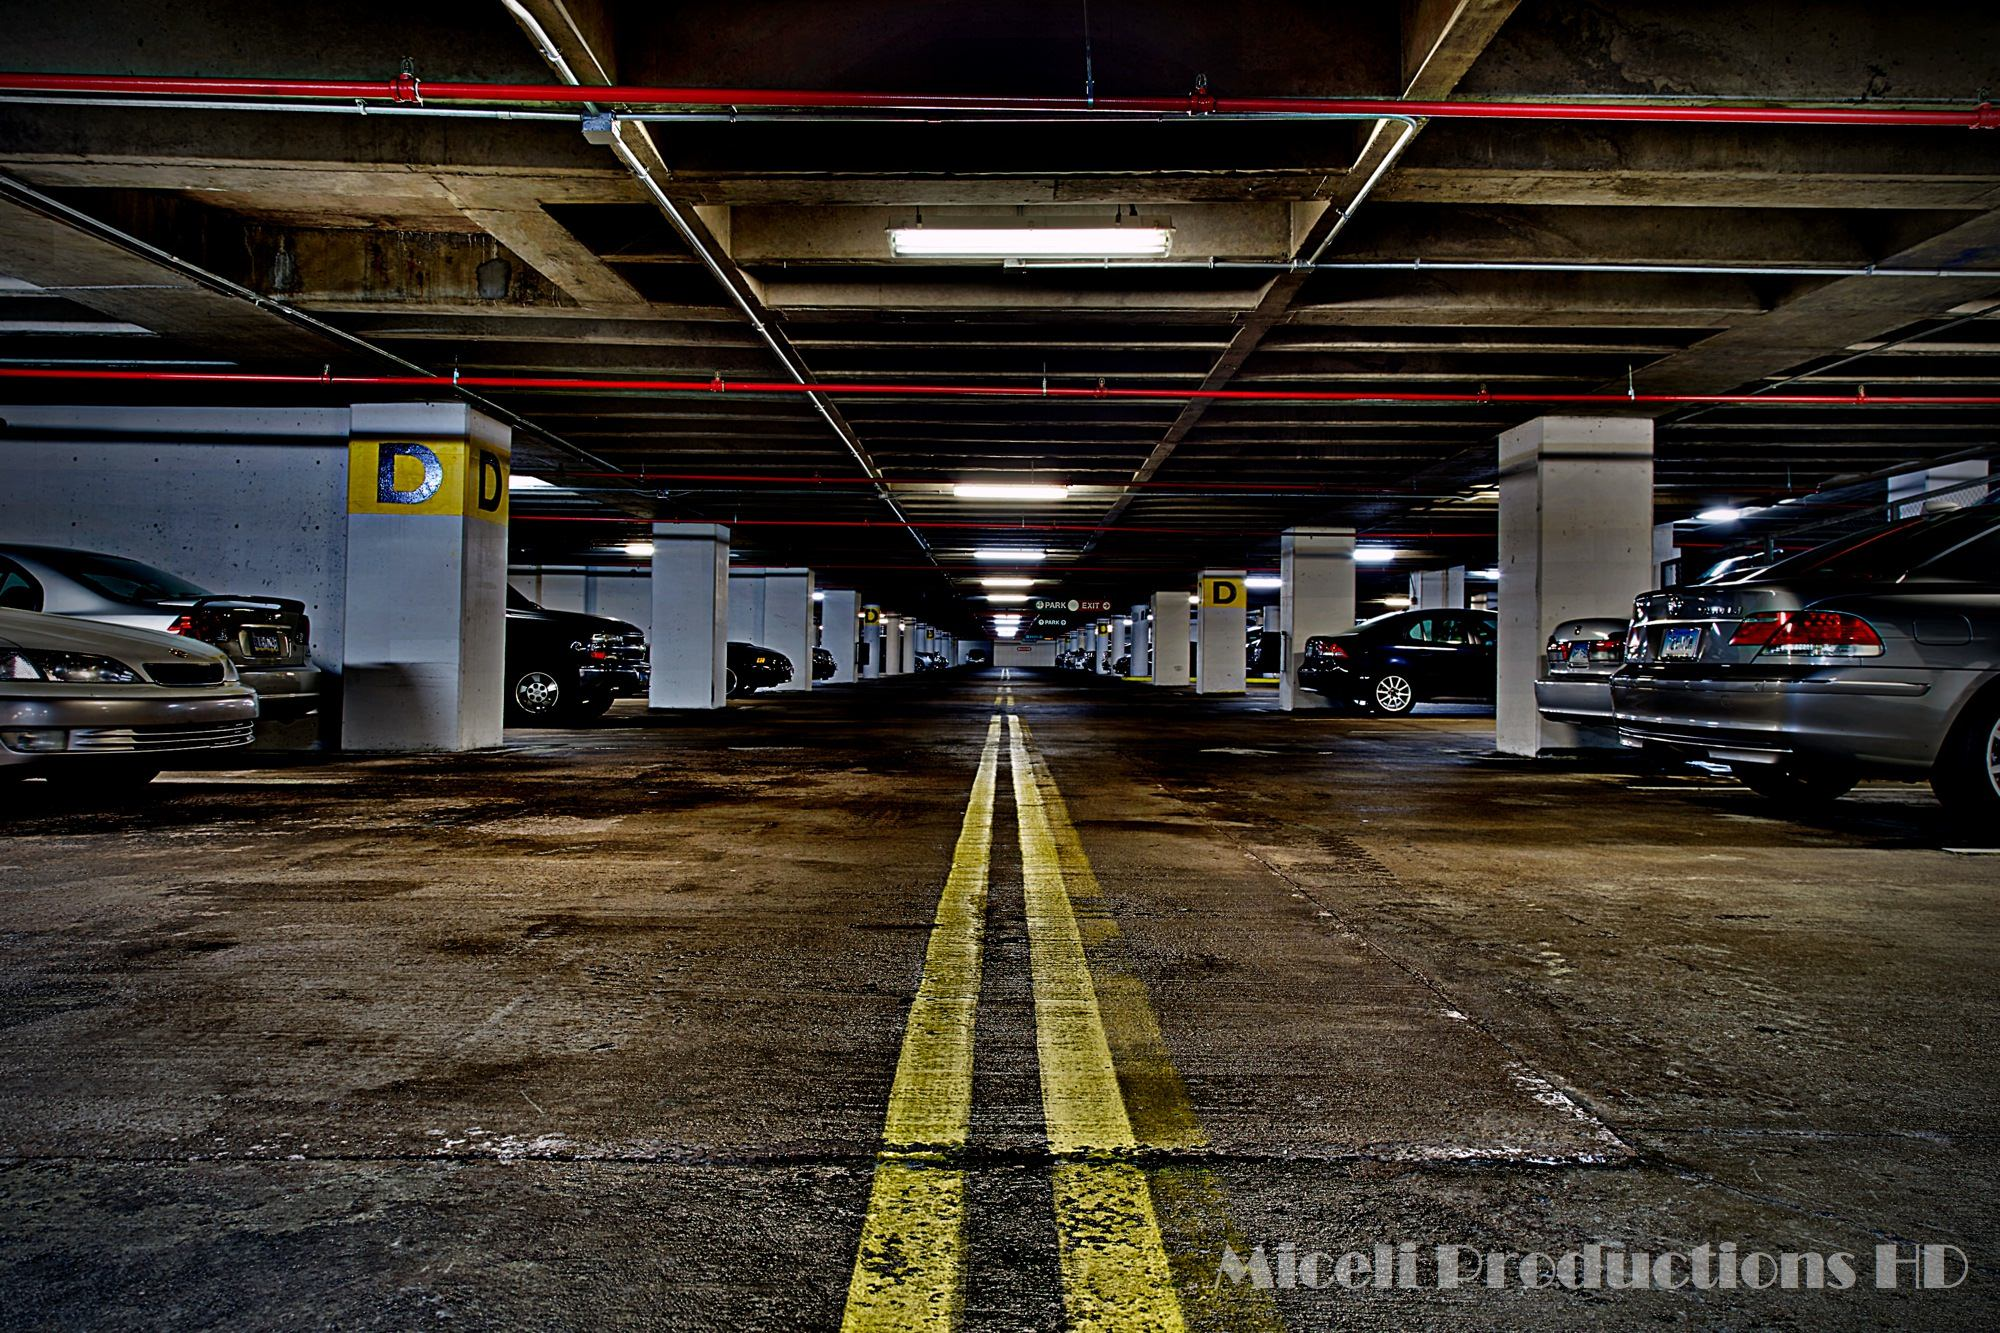 Wet Garage, Photography by Miceli Productions